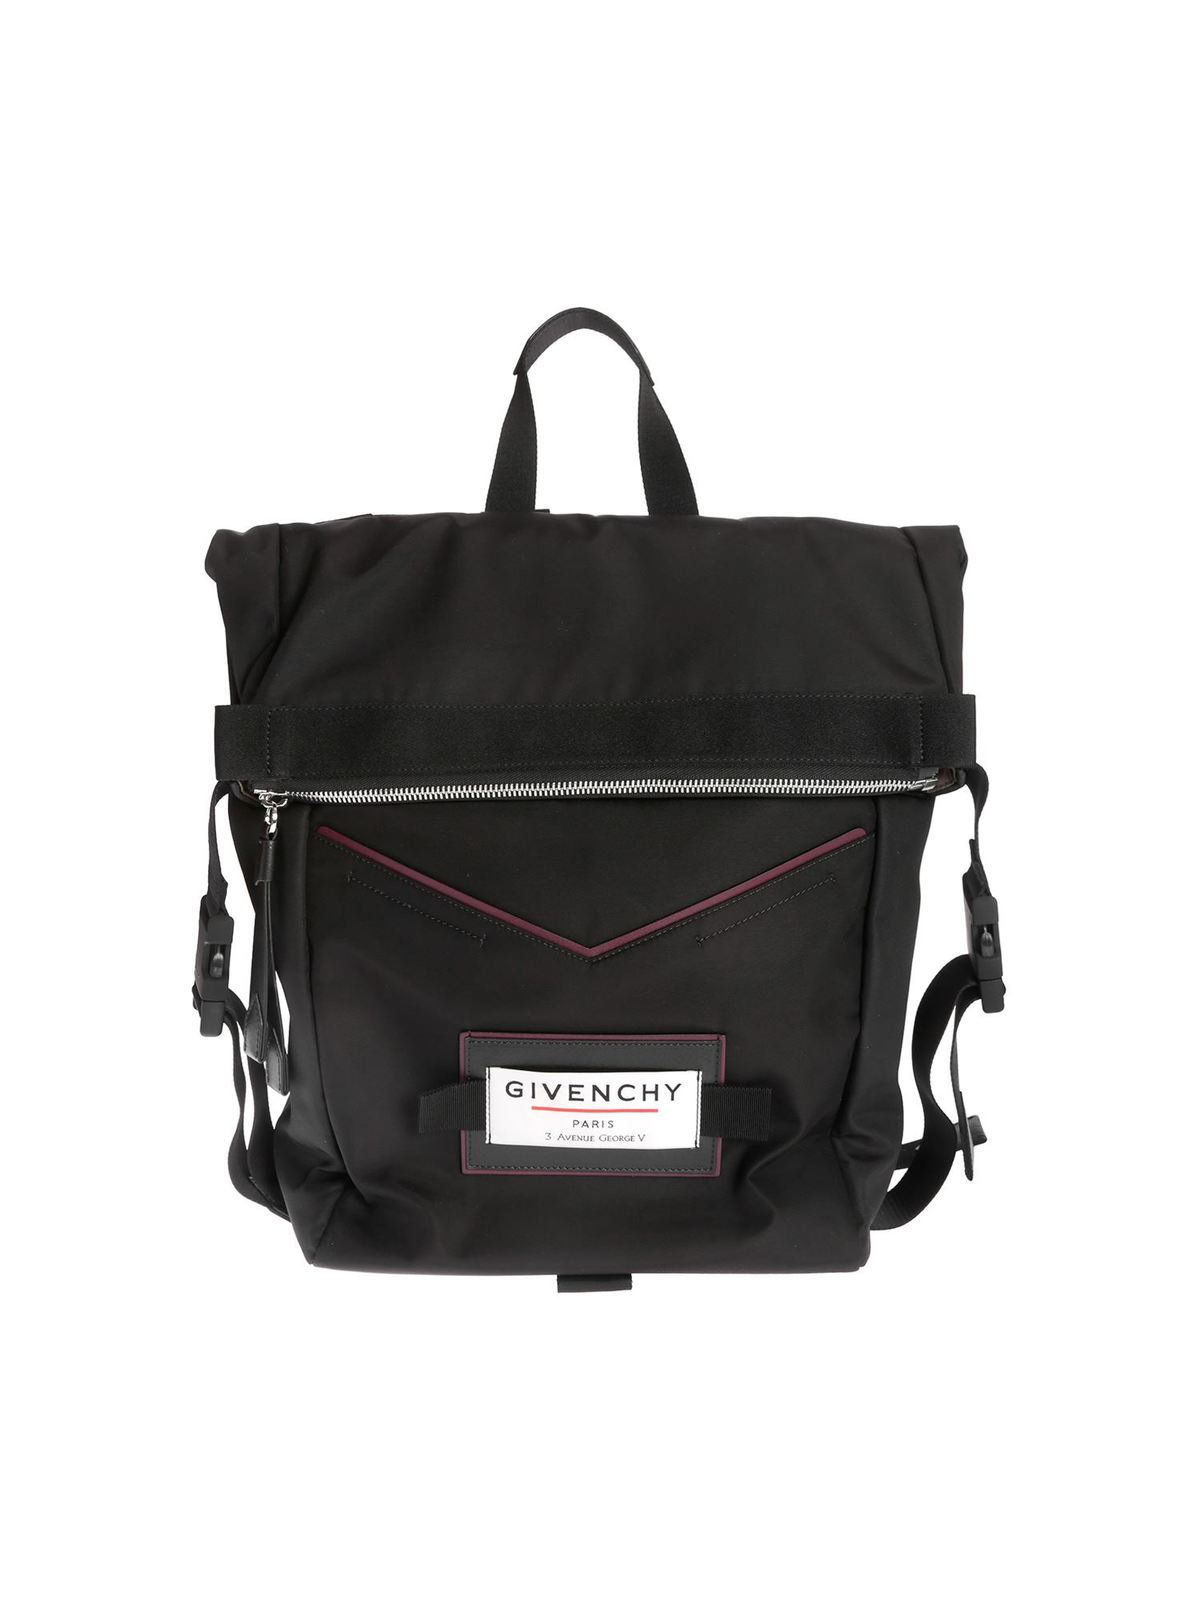 Givenchy GIVENCHY DOWNTOWN BACKPACK IN BLACK